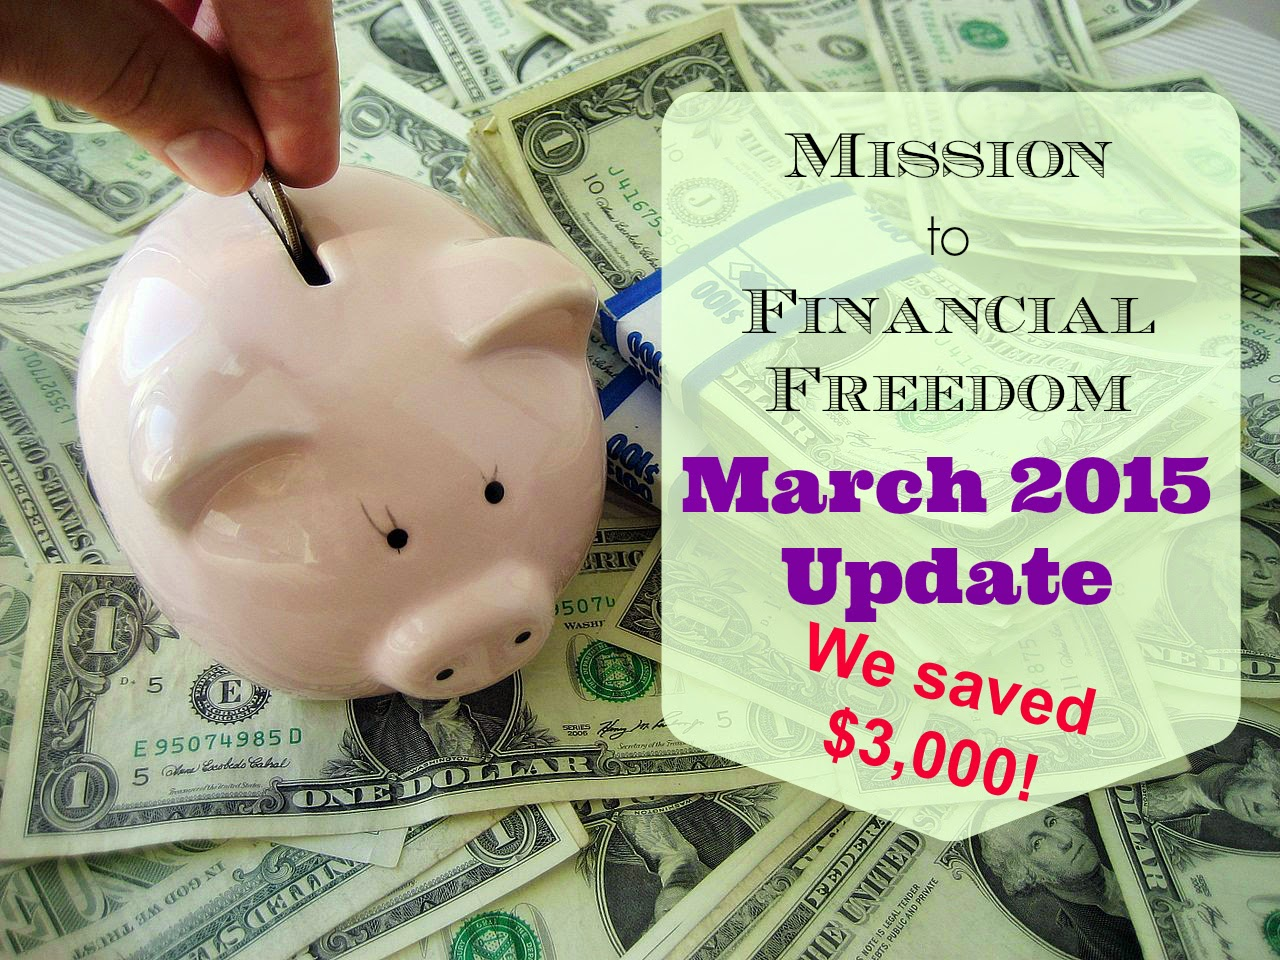 We Saved Over $3,000 in March for Mission to Financial Freedom